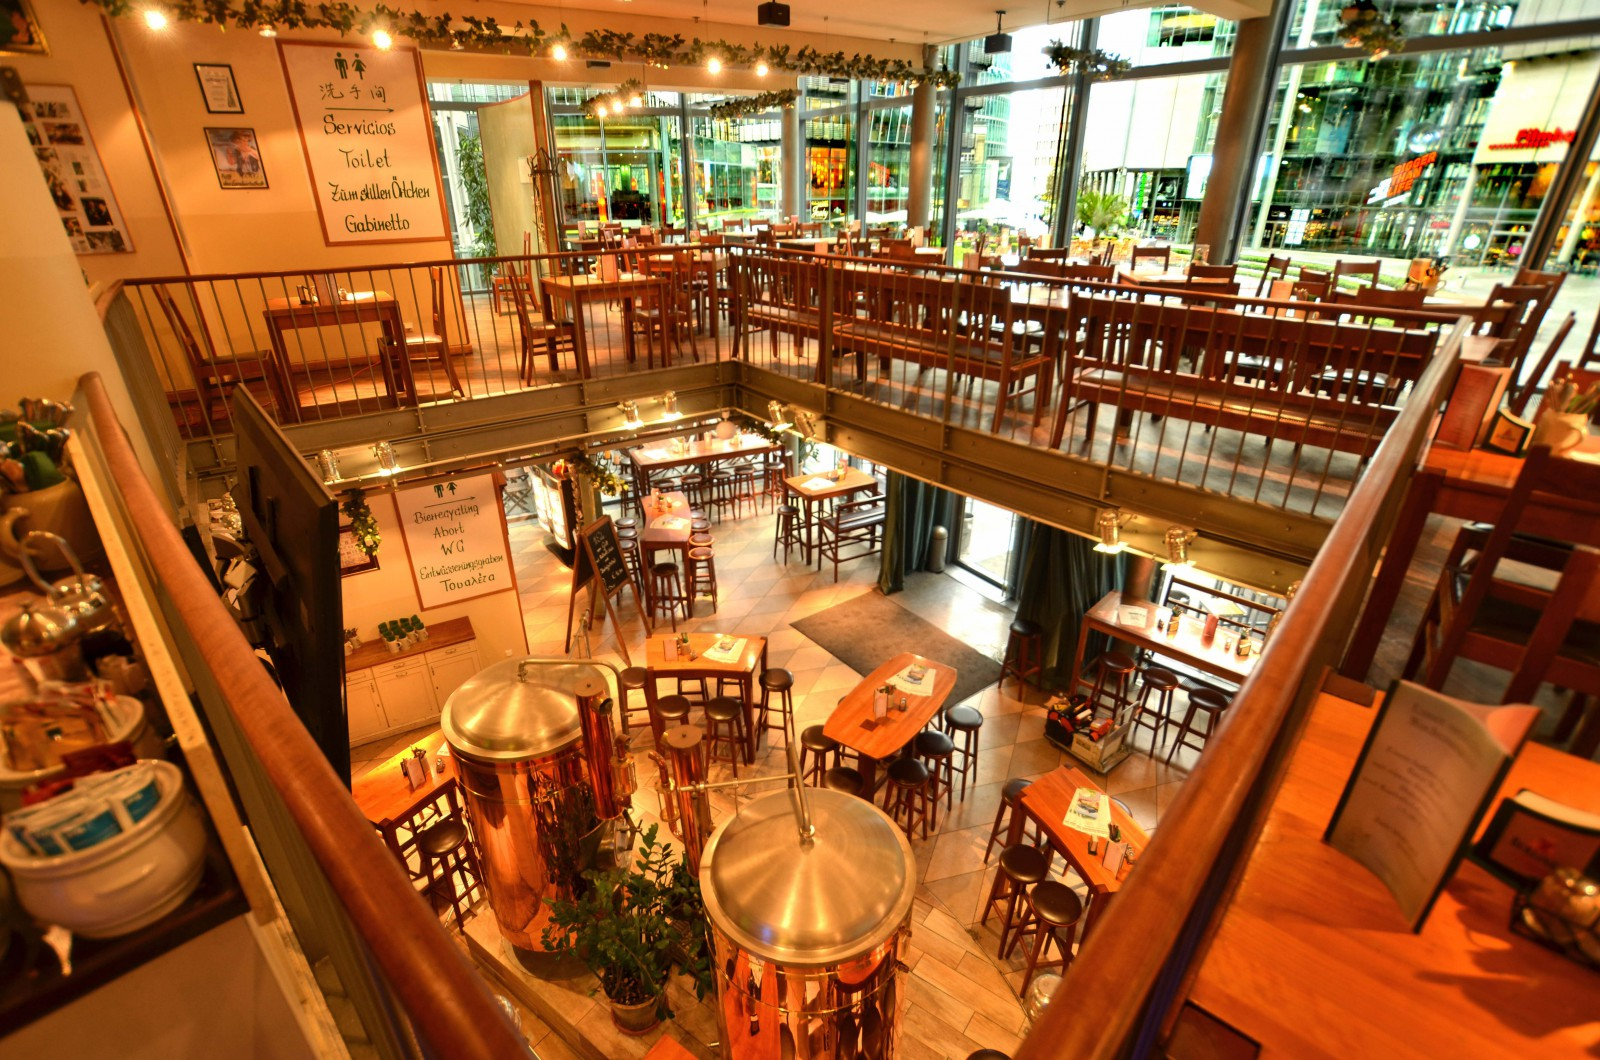 Deutsche Küche Potsdamer Platz Berlin Restaurant Lindenbräu Im Sony Center In Berlin